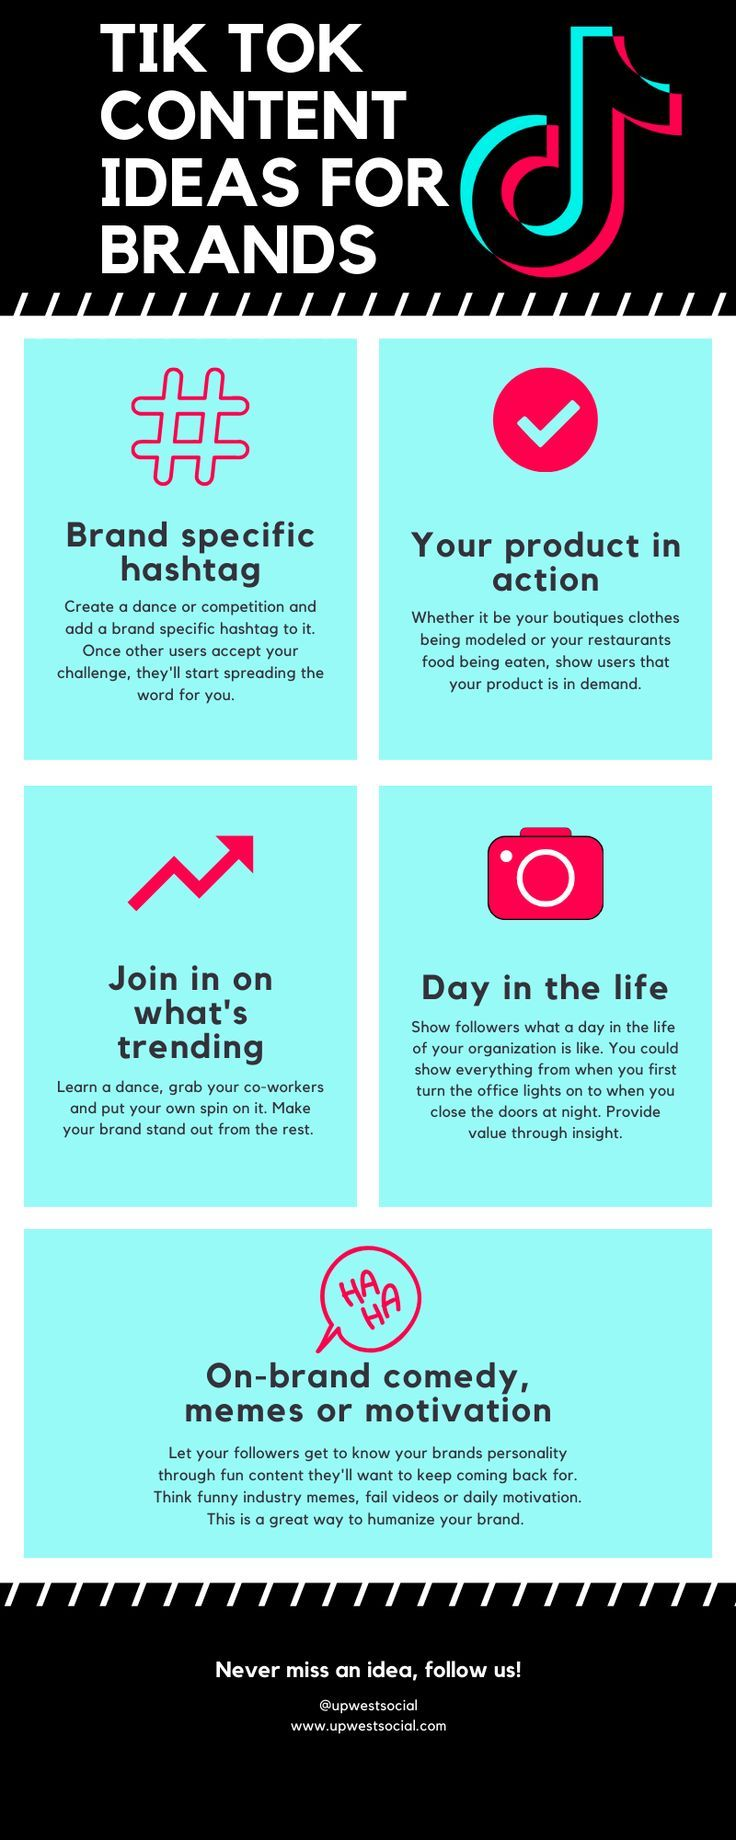 Tik Tok Trending Ideas Small Business Brand How To Use Hashtags Small Business Social Media Small Business Branding